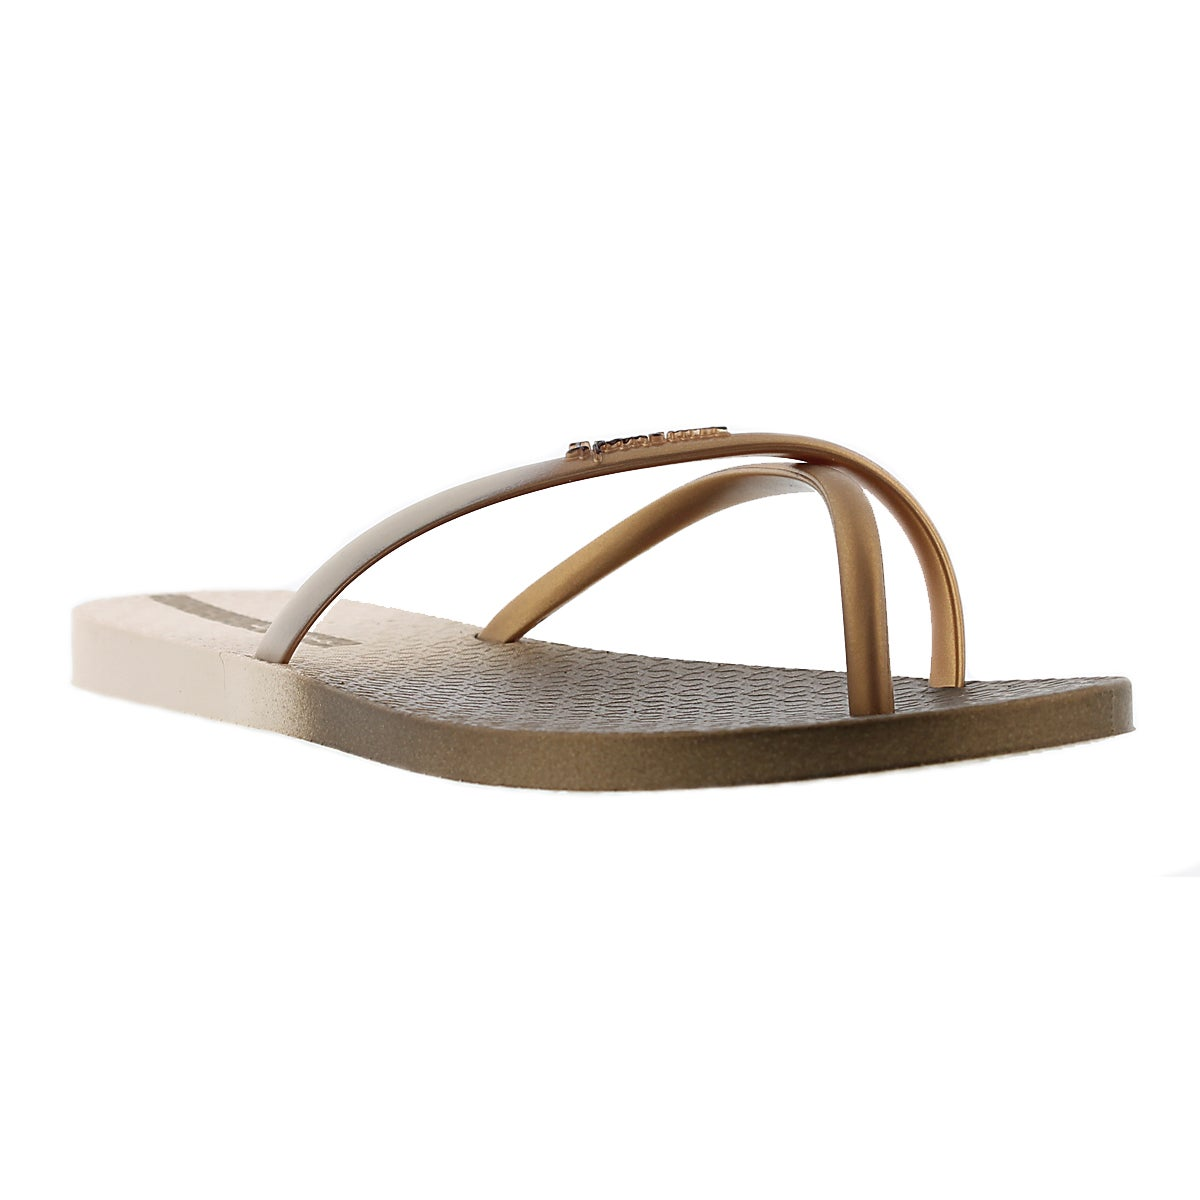 Lds Sunset beige/gold toe ring sandal